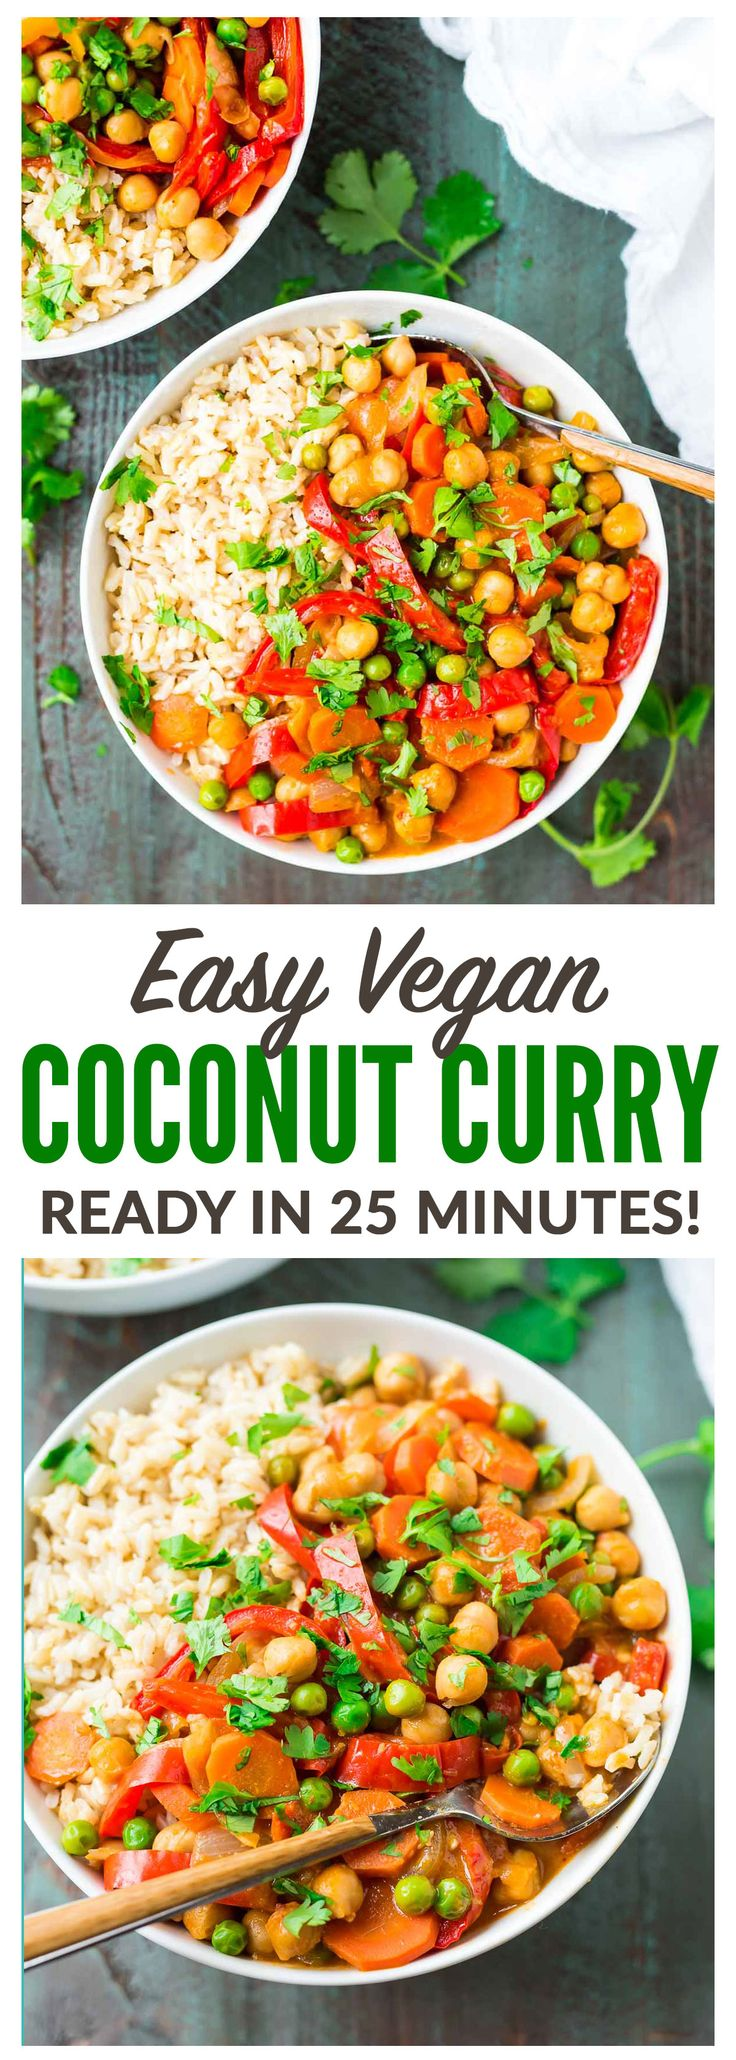 Easy Vegan Chickpea Coconut Curry—the BEST Thai curry I've ever had! Not too spicy, healthy, and full of flavor. Ready in 25 minutes! {gluten free} Recipe at wellplated.com | @wellplated